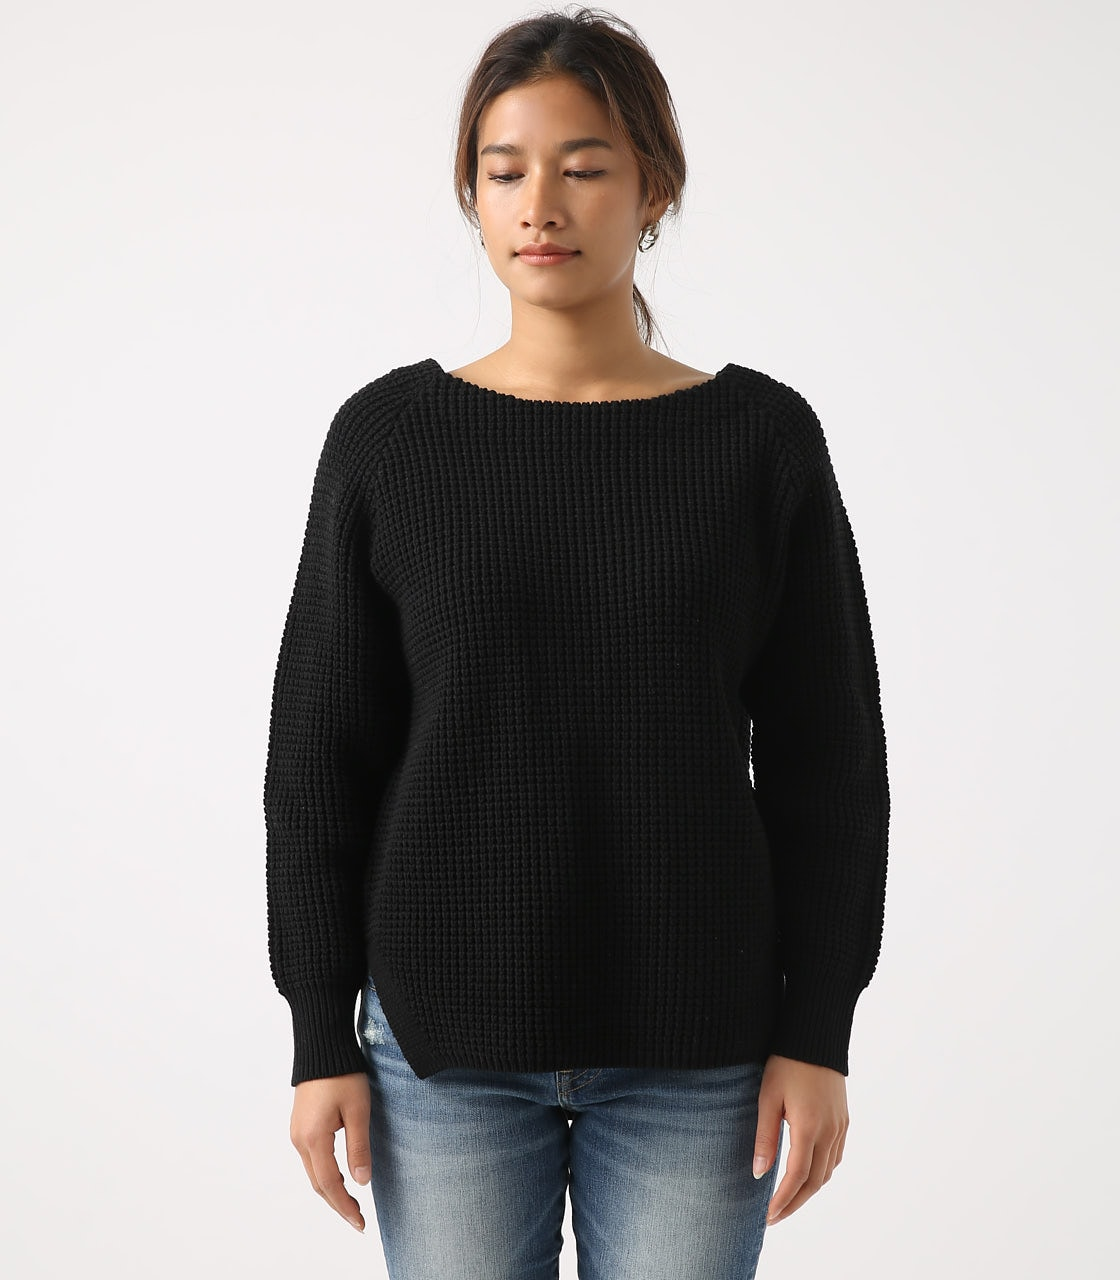 【AZUL BY MOUSSY】WAFFLE KNIT TUNIC 詳細画像 BLK 5